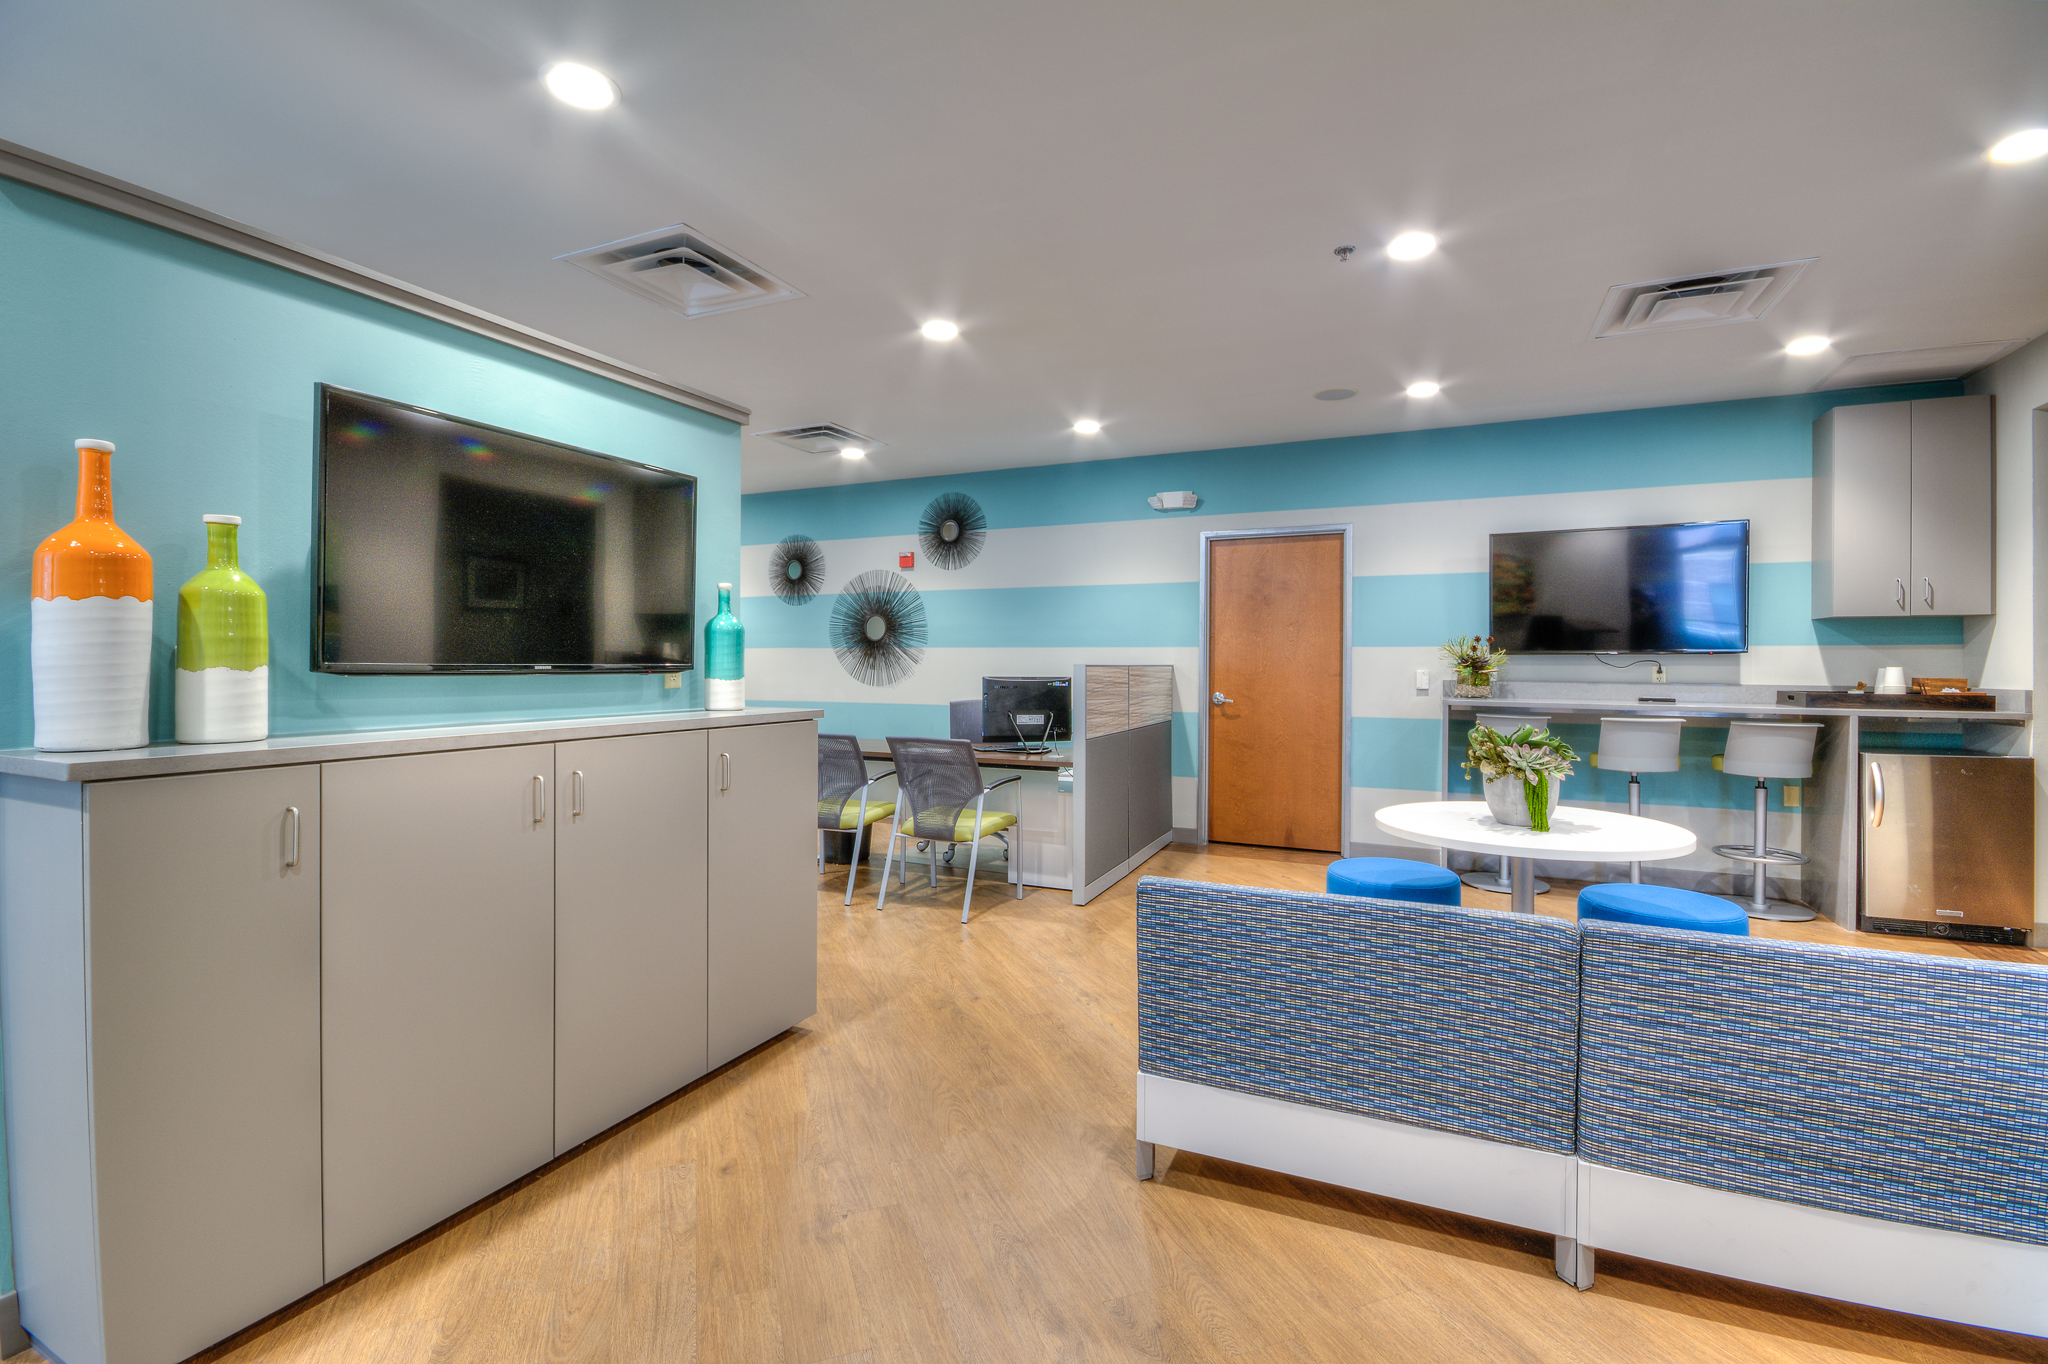 Interior design for the Quarters on Campus leasing office in Austin, Texas